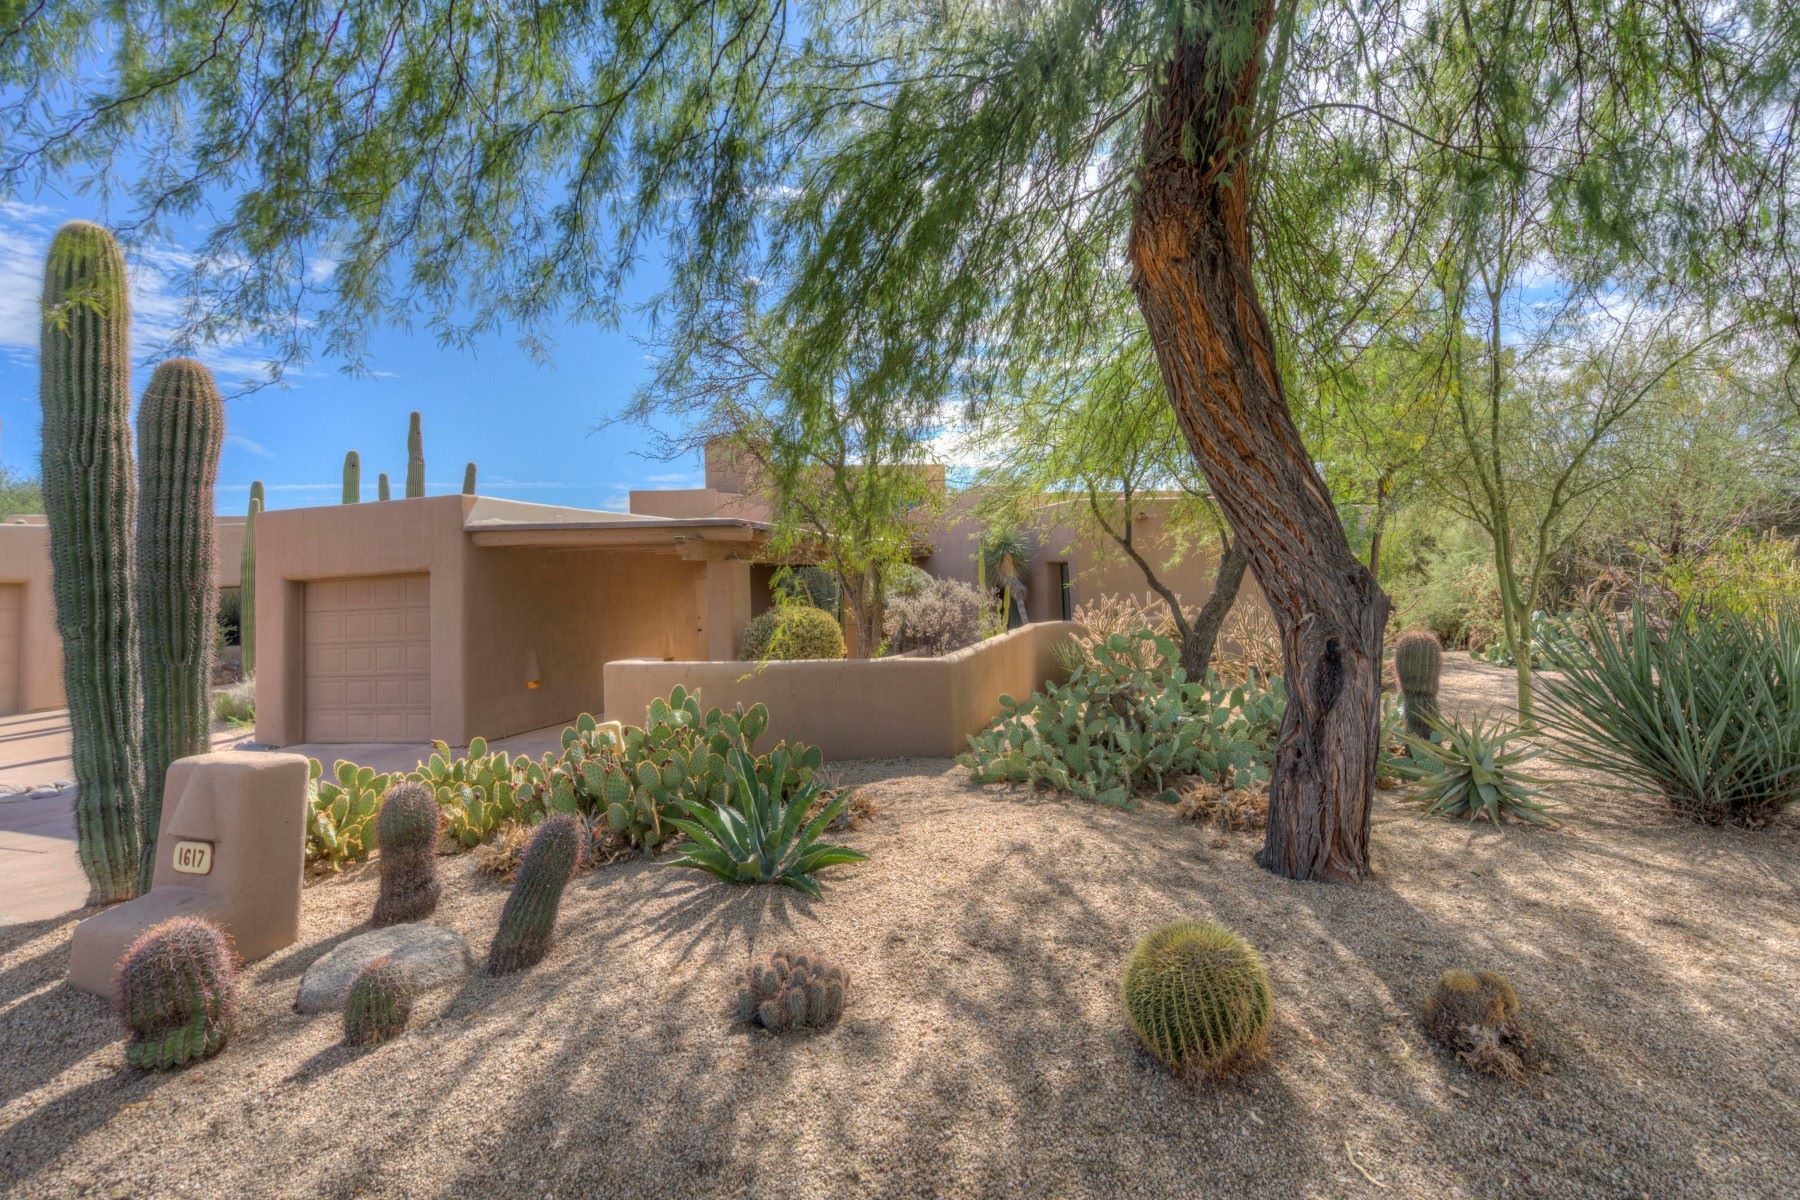 Single Family Home for Sale at Enchanting villa sits on the 10th fairway of The Boulders 1617 N Quartz Valley Rd Scottsdale, Arizona 85266 United States